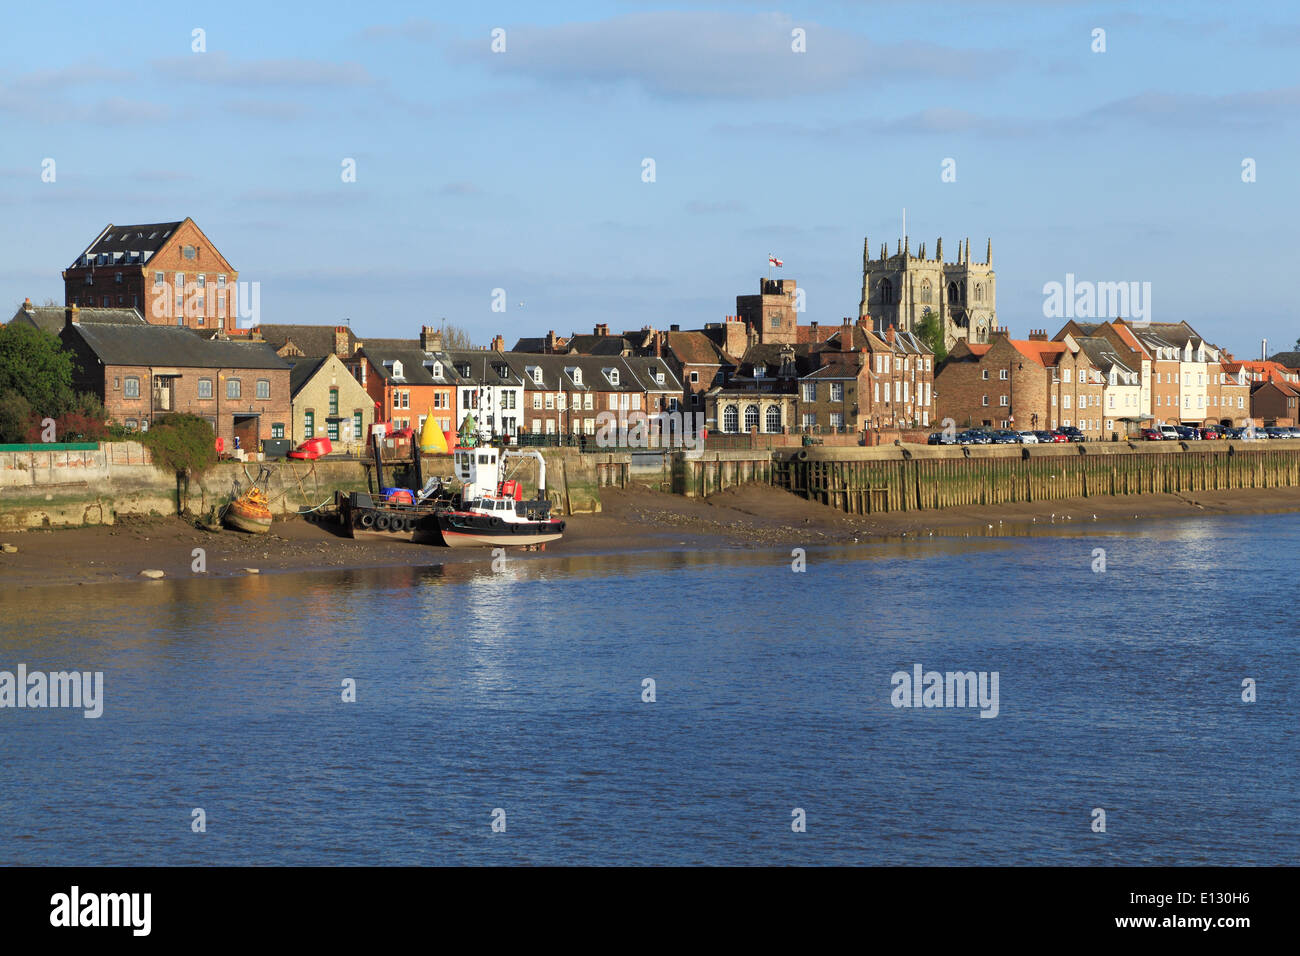 Kings Lynn, Quayside, Town, Norfolk, view across River Ouse from West Lynn England UK panoramic panorama - Stock Image